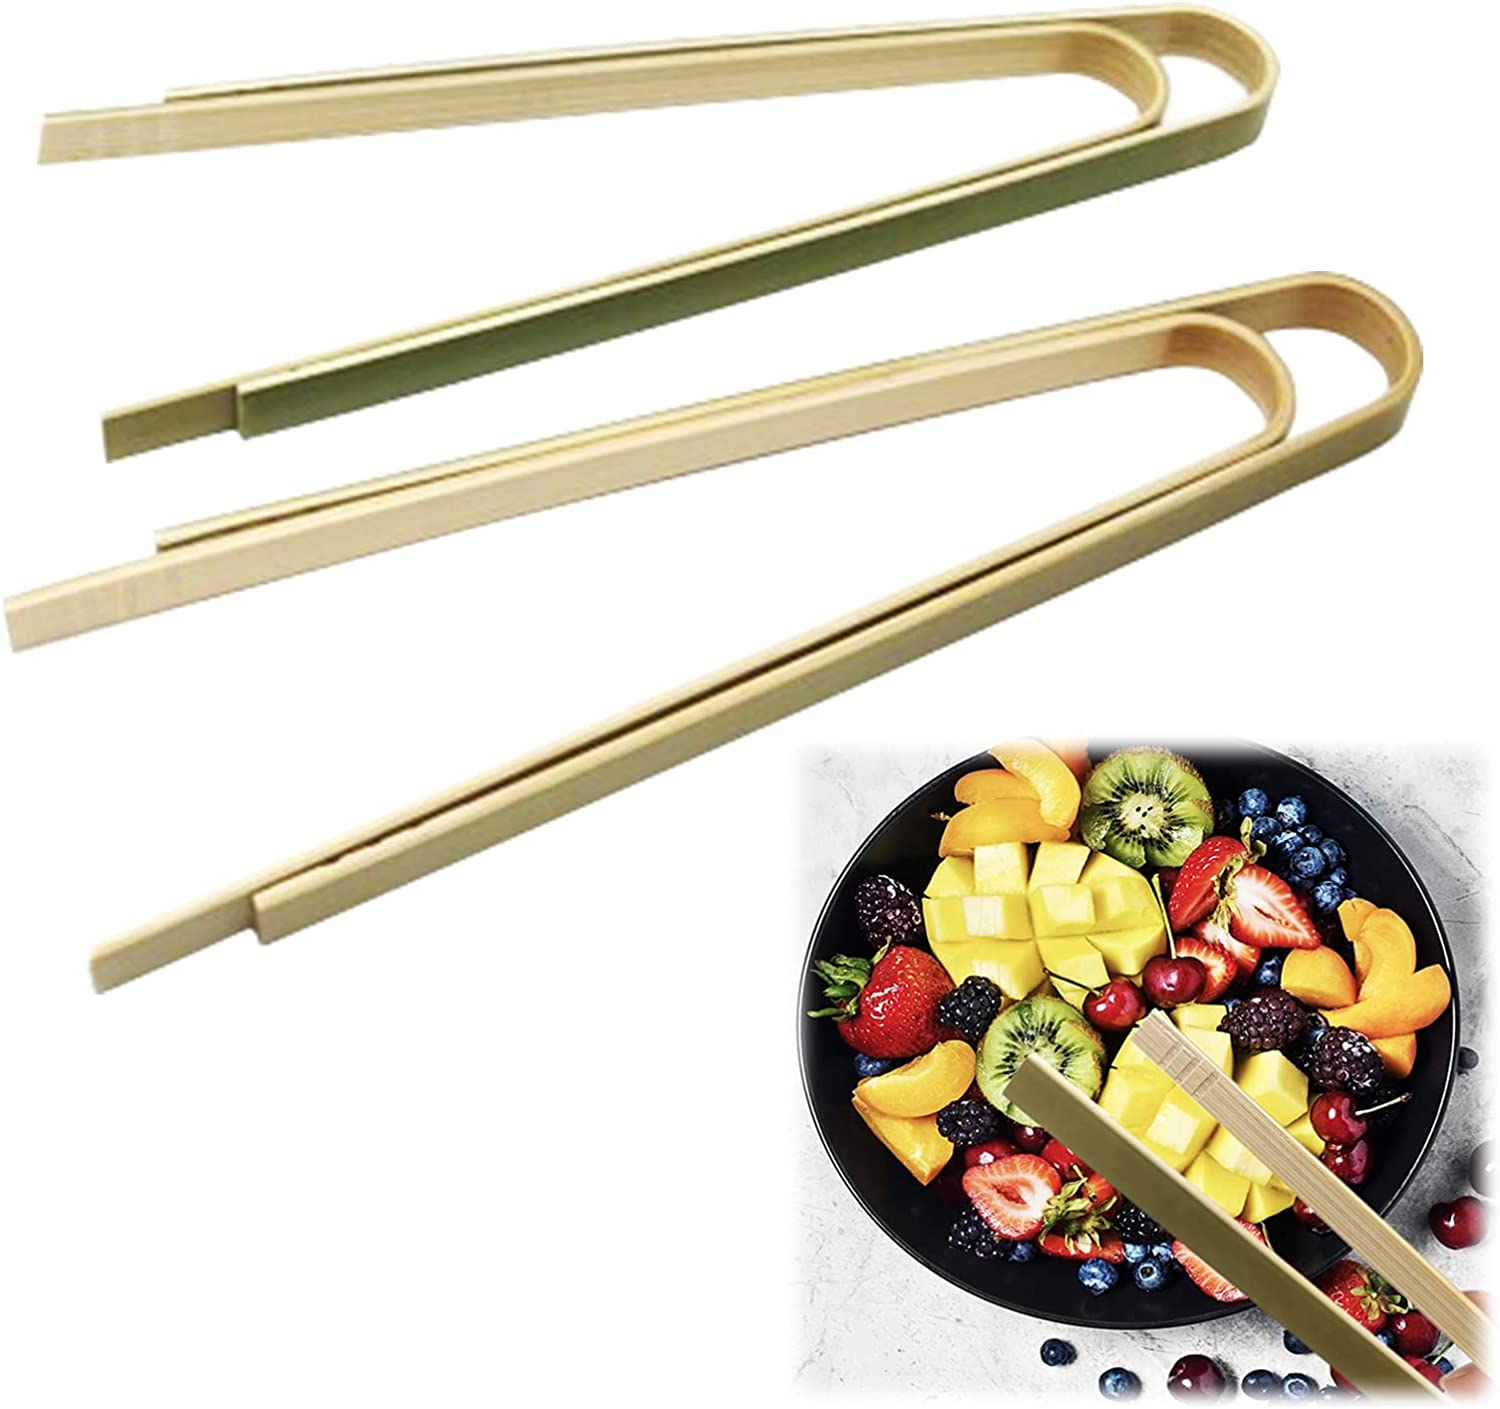 60 PCS Bamboo Mini Tongs, Waffle Tongs Wooden Toast Tongs, Toaster Small Tongs Serving Tongs Kitchen Tongs for Cheese Bacon Muffin Fruits Bread